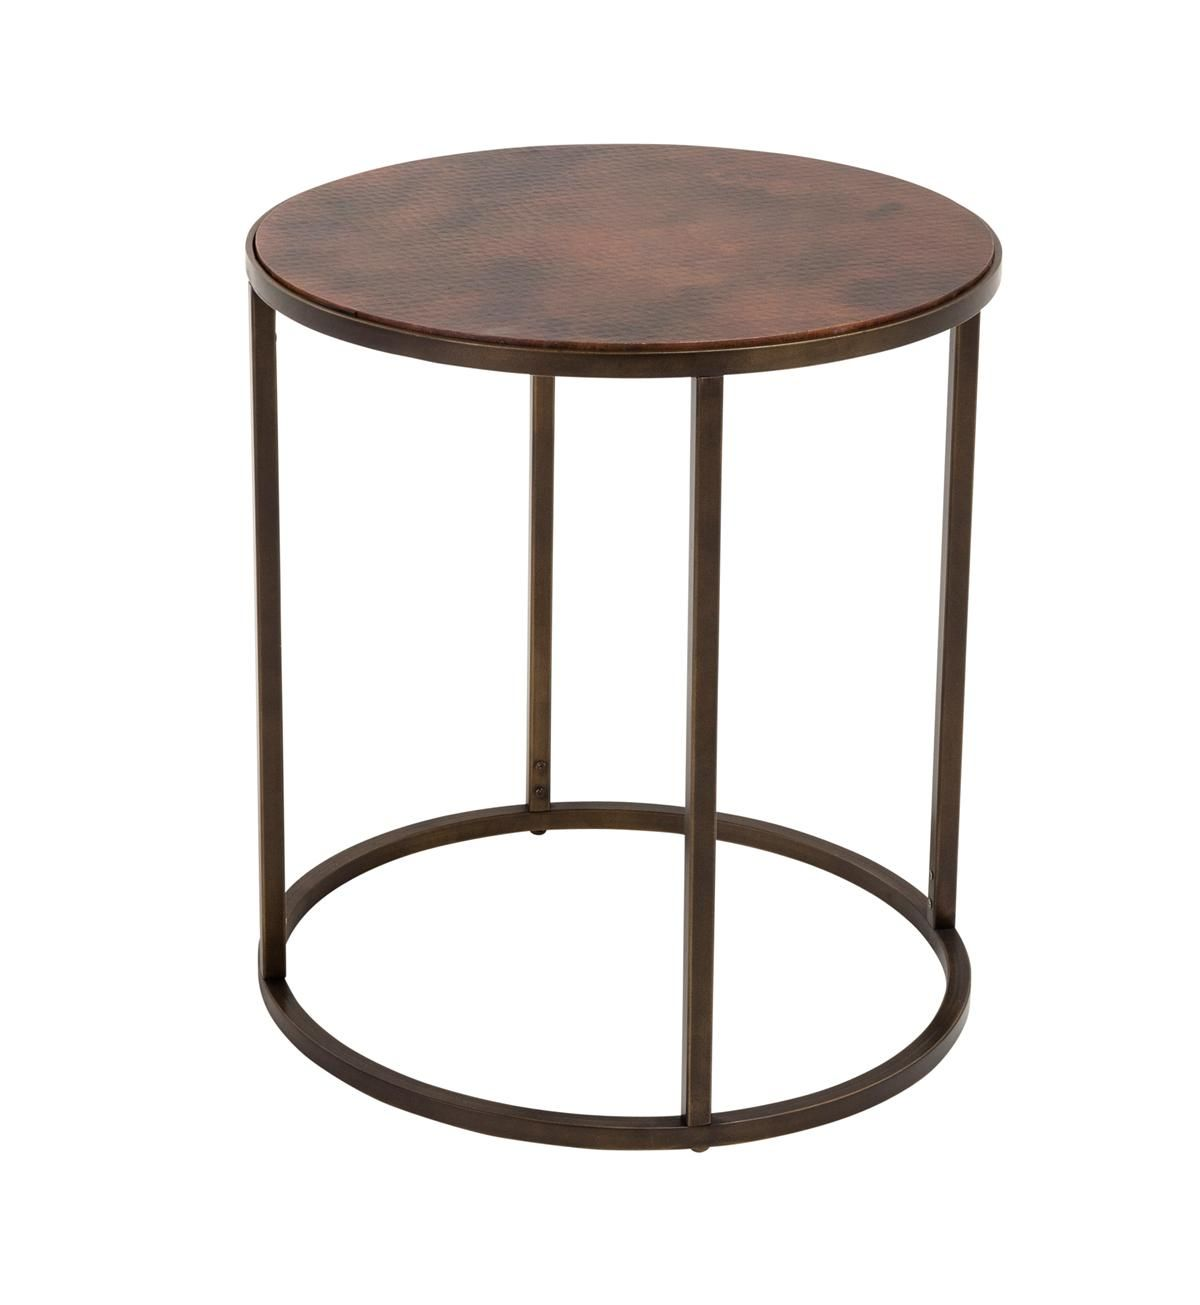 Copper Top End Table Weir S Furniture Copper Coffee Table Copper Top Table Nesting End Tables